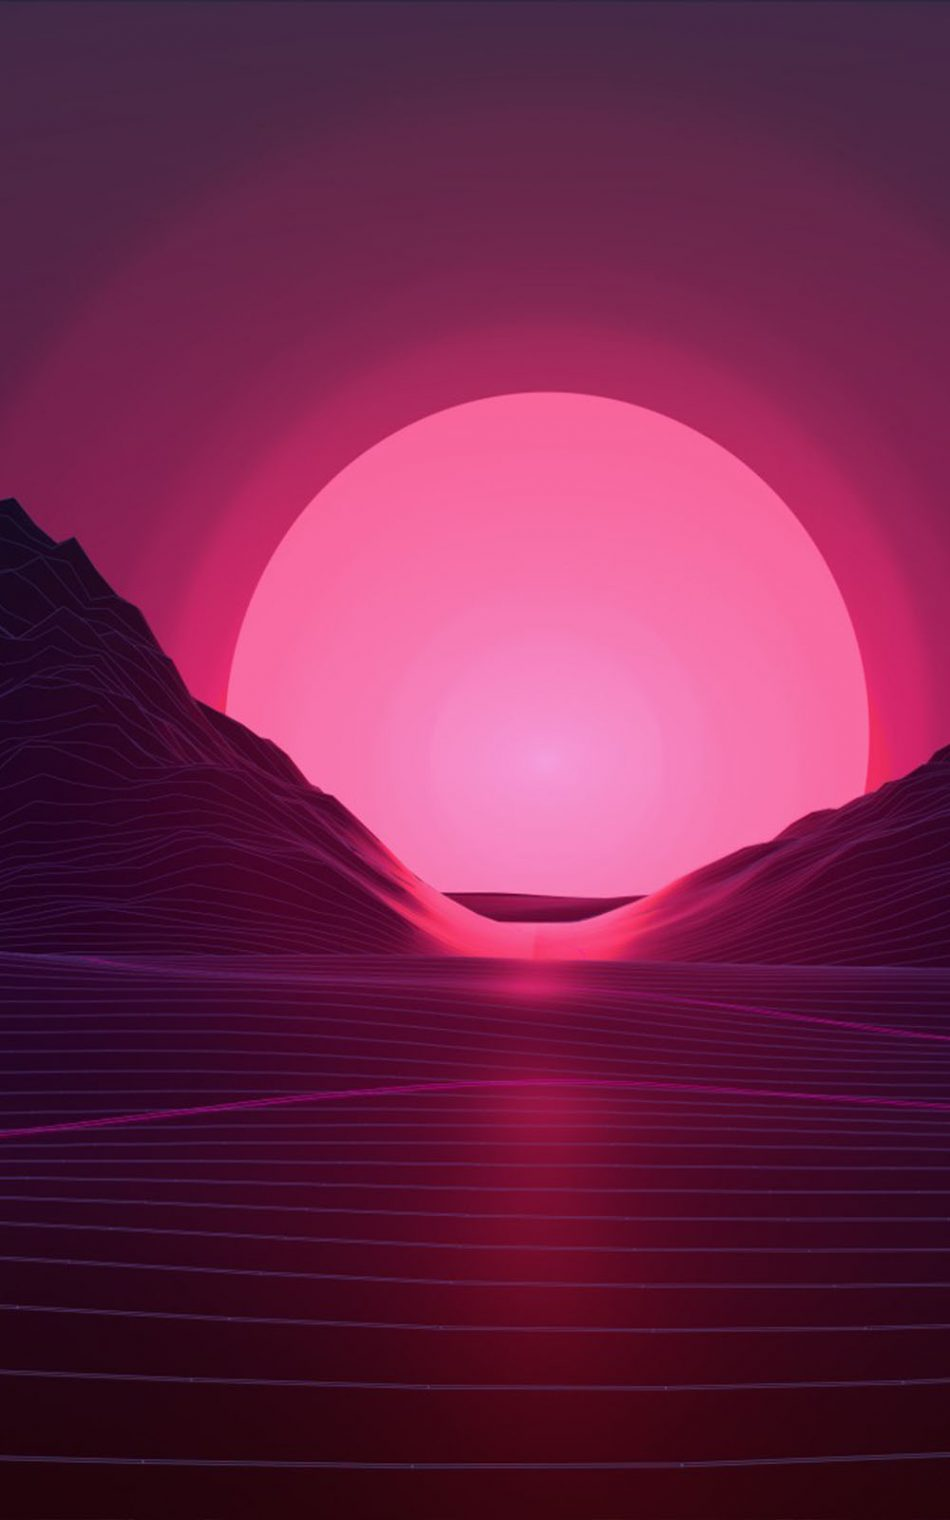 Download neon pink sunset artwork free pure 4k ultra hd - 4k love wallpaper for mobile ...